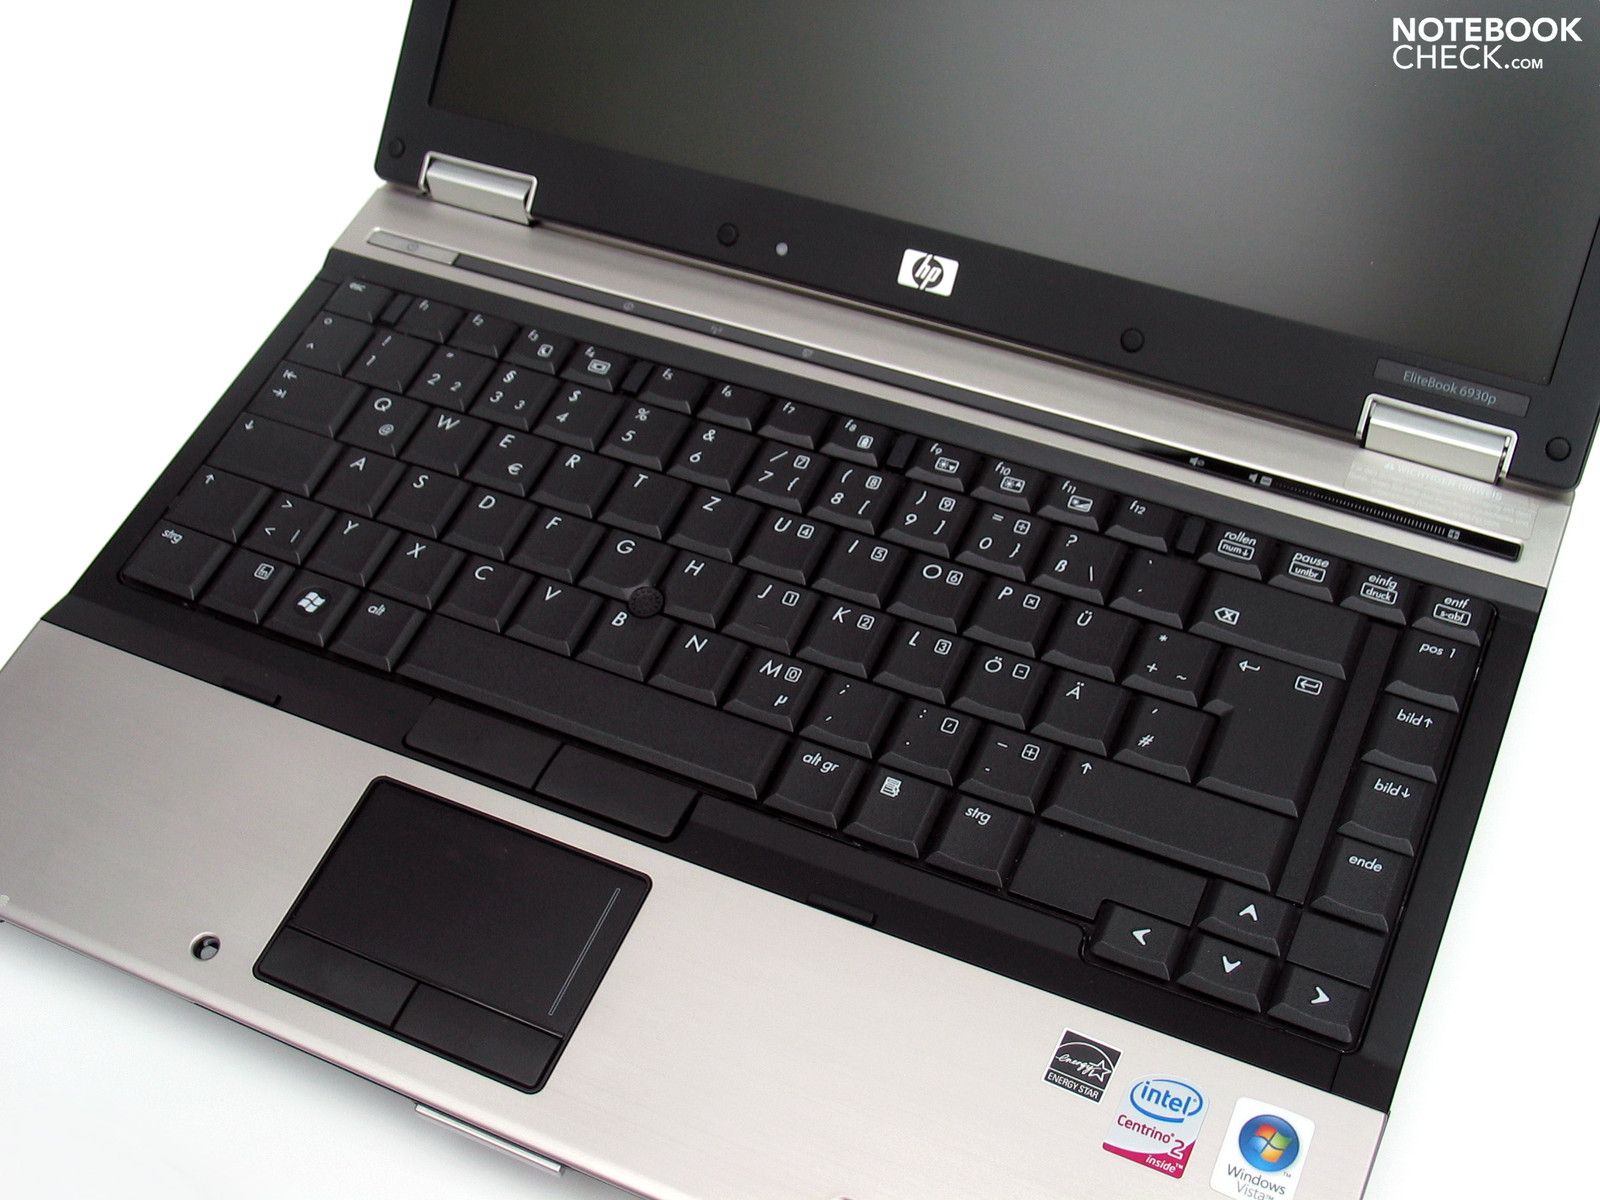 Hp elitebook 6930p drivers windows 7 | HP EliteBook 6930p